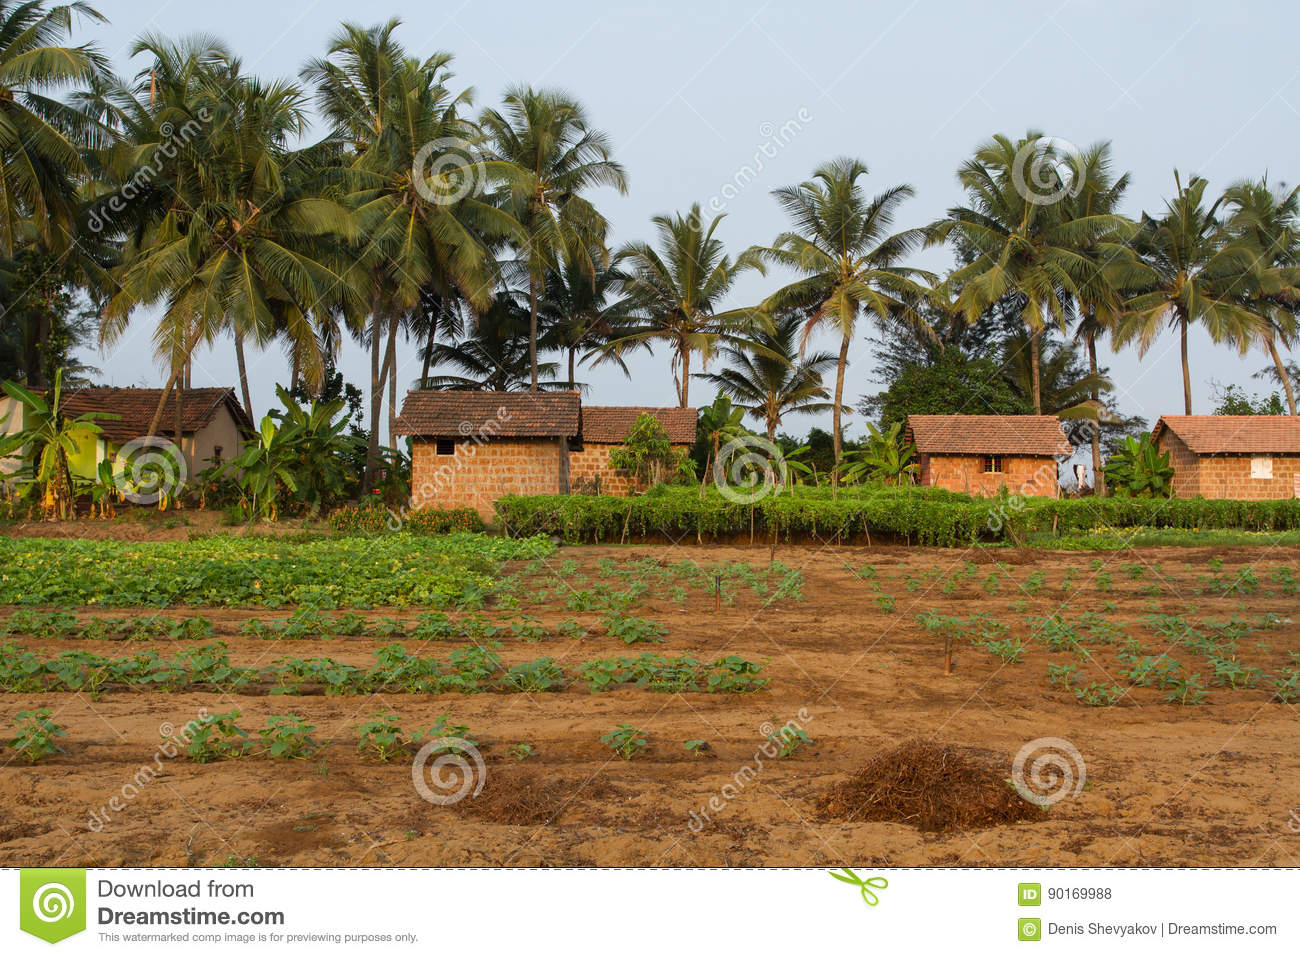 Indian Village Fresh Land And Brick Houses Stock Photo